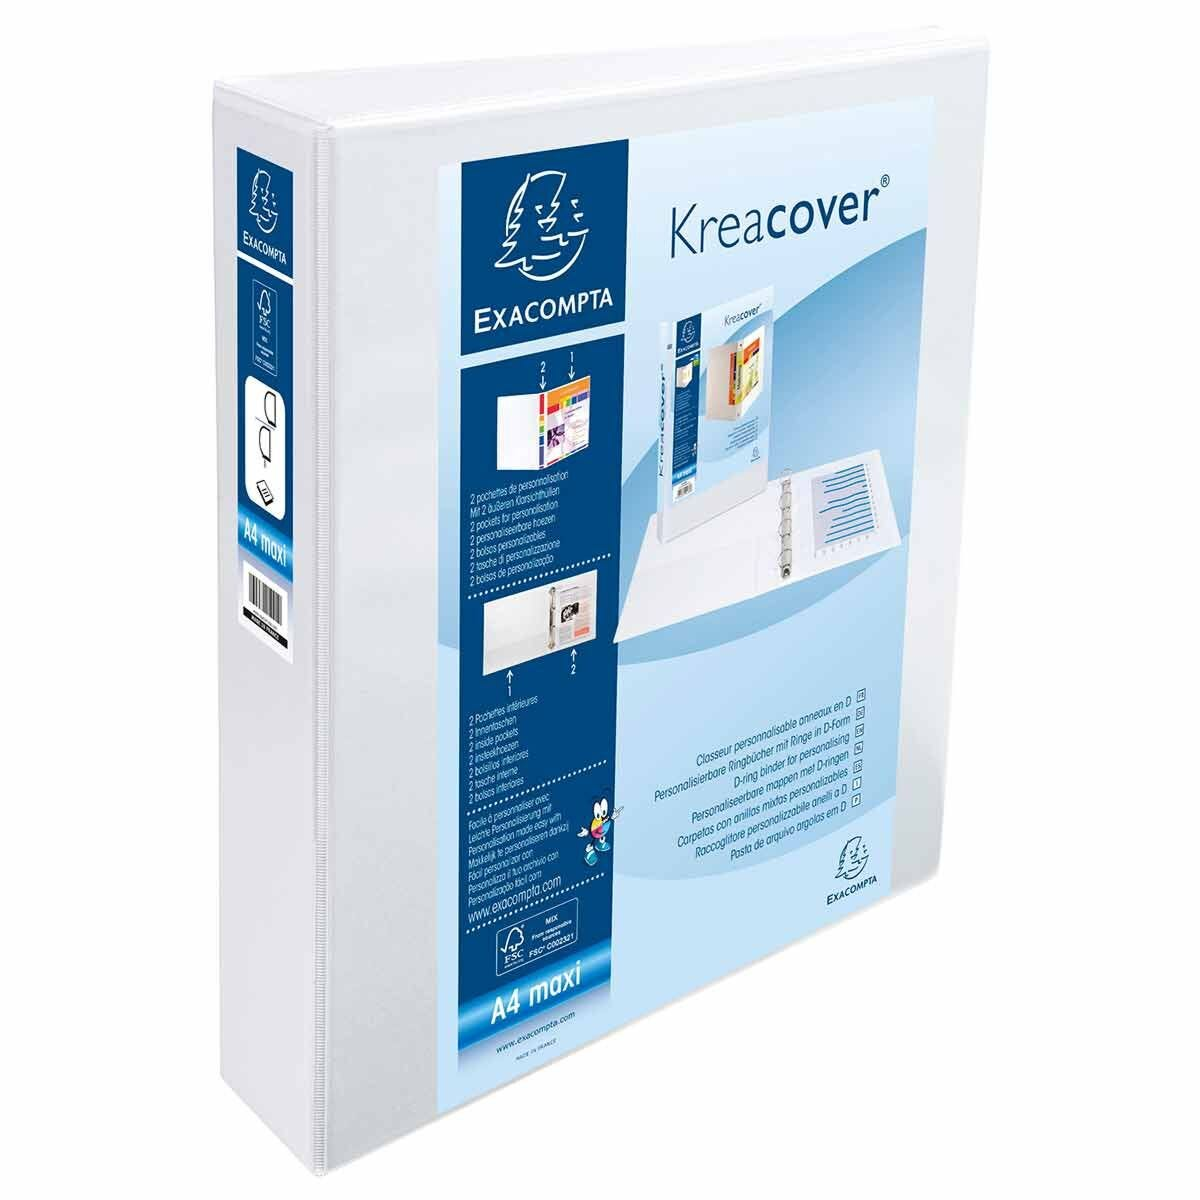 Exacompta Kreacover Personal Ring Binder A4 Plus 2 Rings 50mm 2 Pockets Pack of 10 White